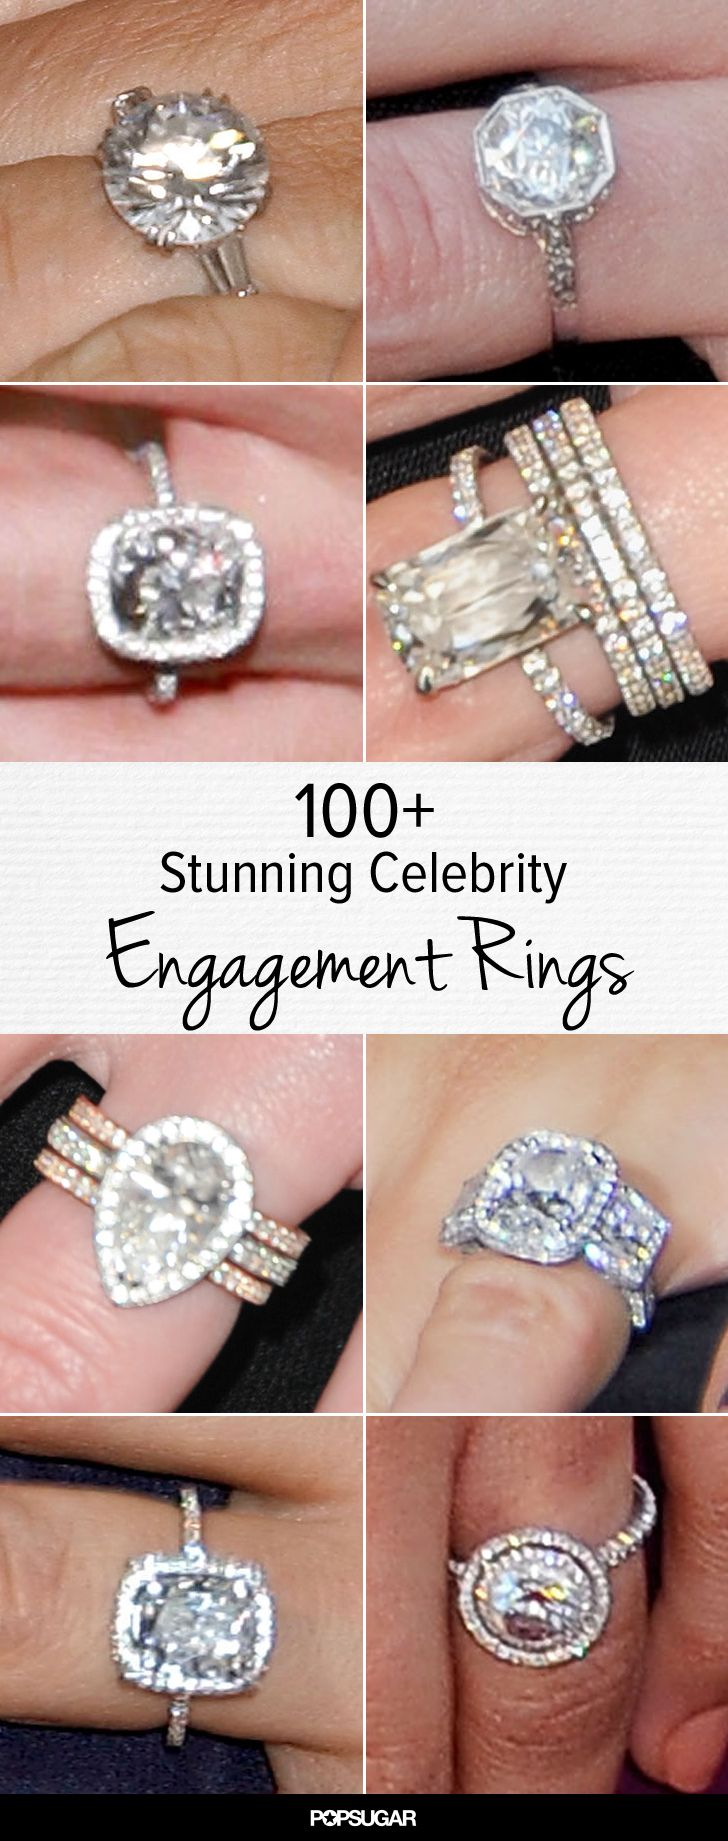 12 Non-Traditional Celebrity Engagement Rings | InStyle.com